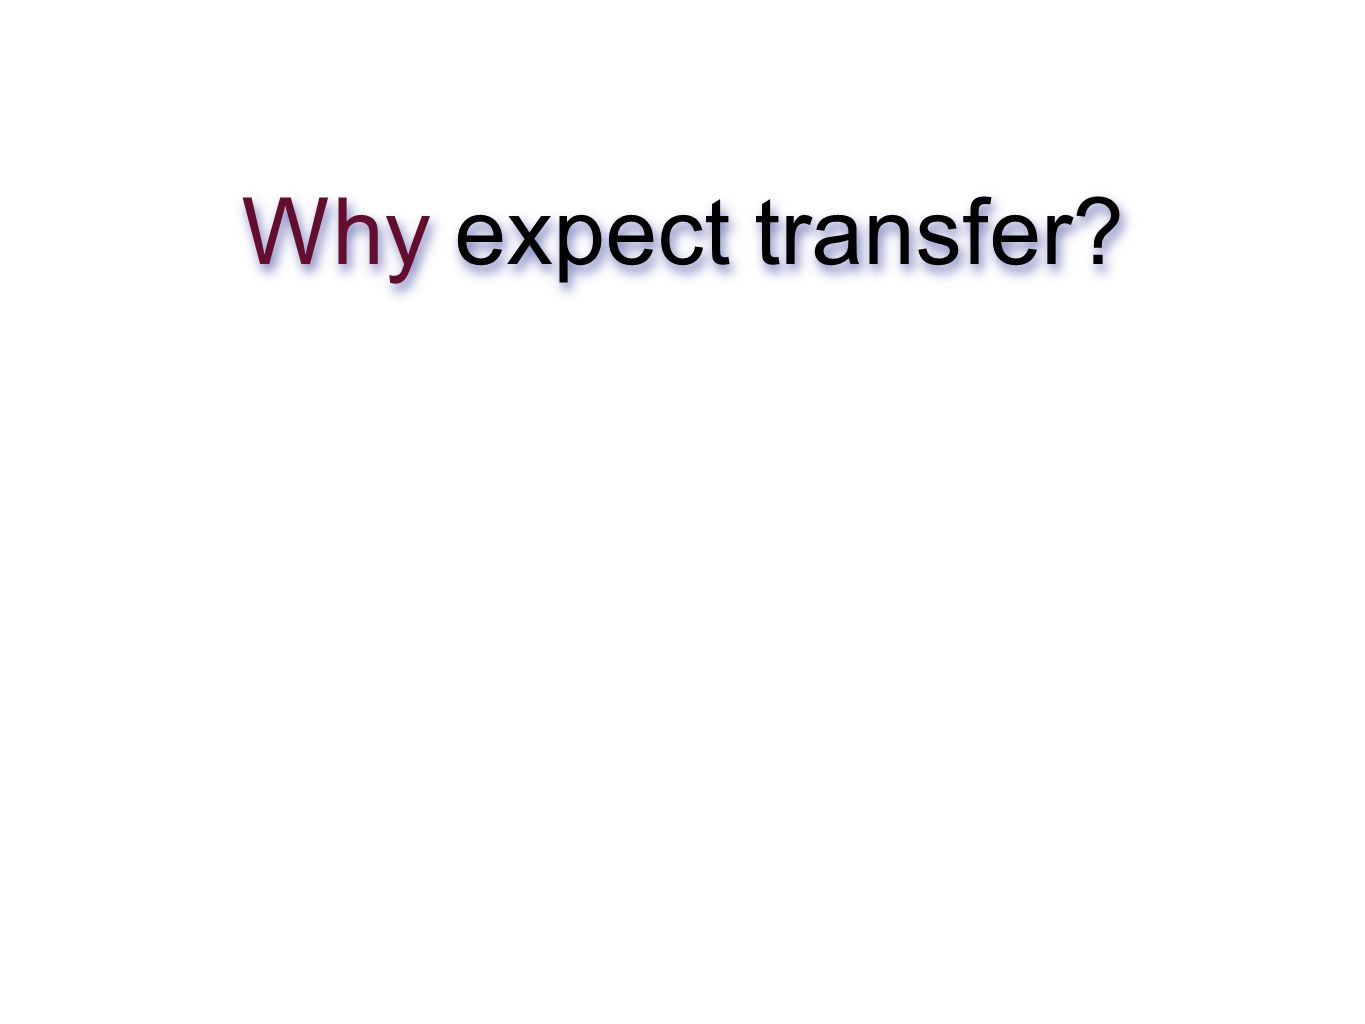 Why expect transfer